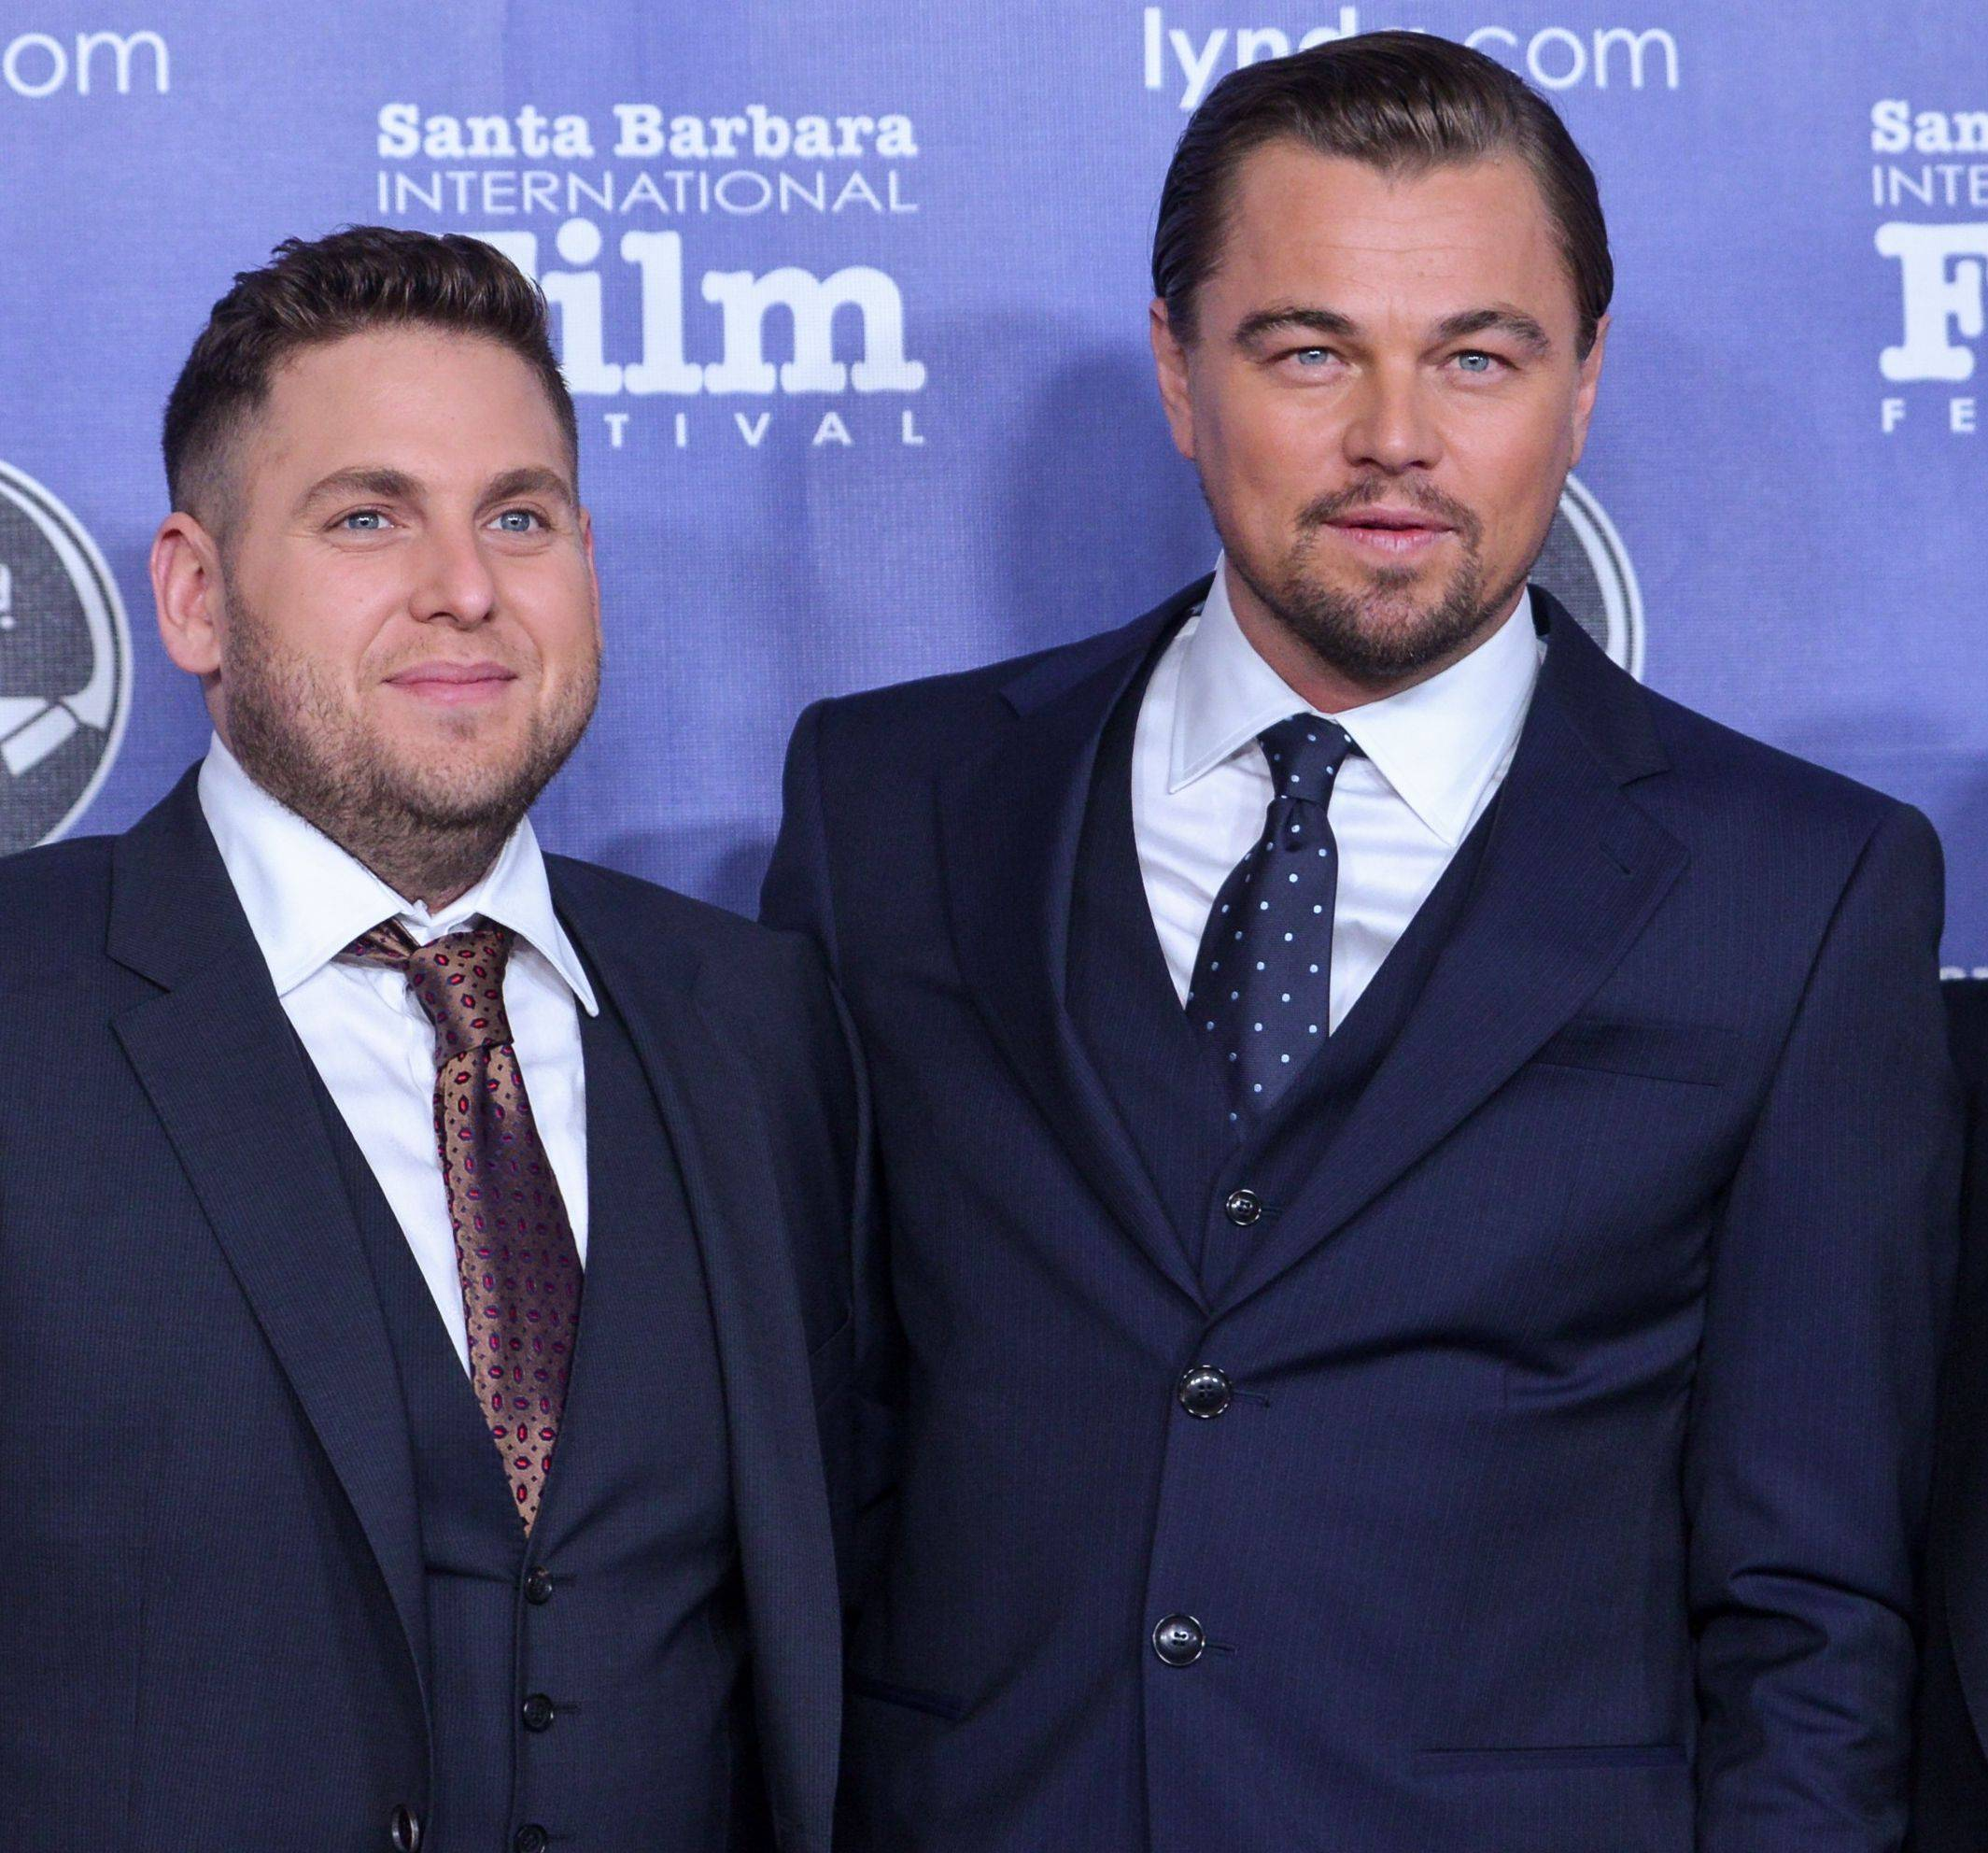 From left, Jonah Hill, Leonardo DiCaprio are teaming up again to tell the story of 1996 Olympic security guard Richard Jewell.